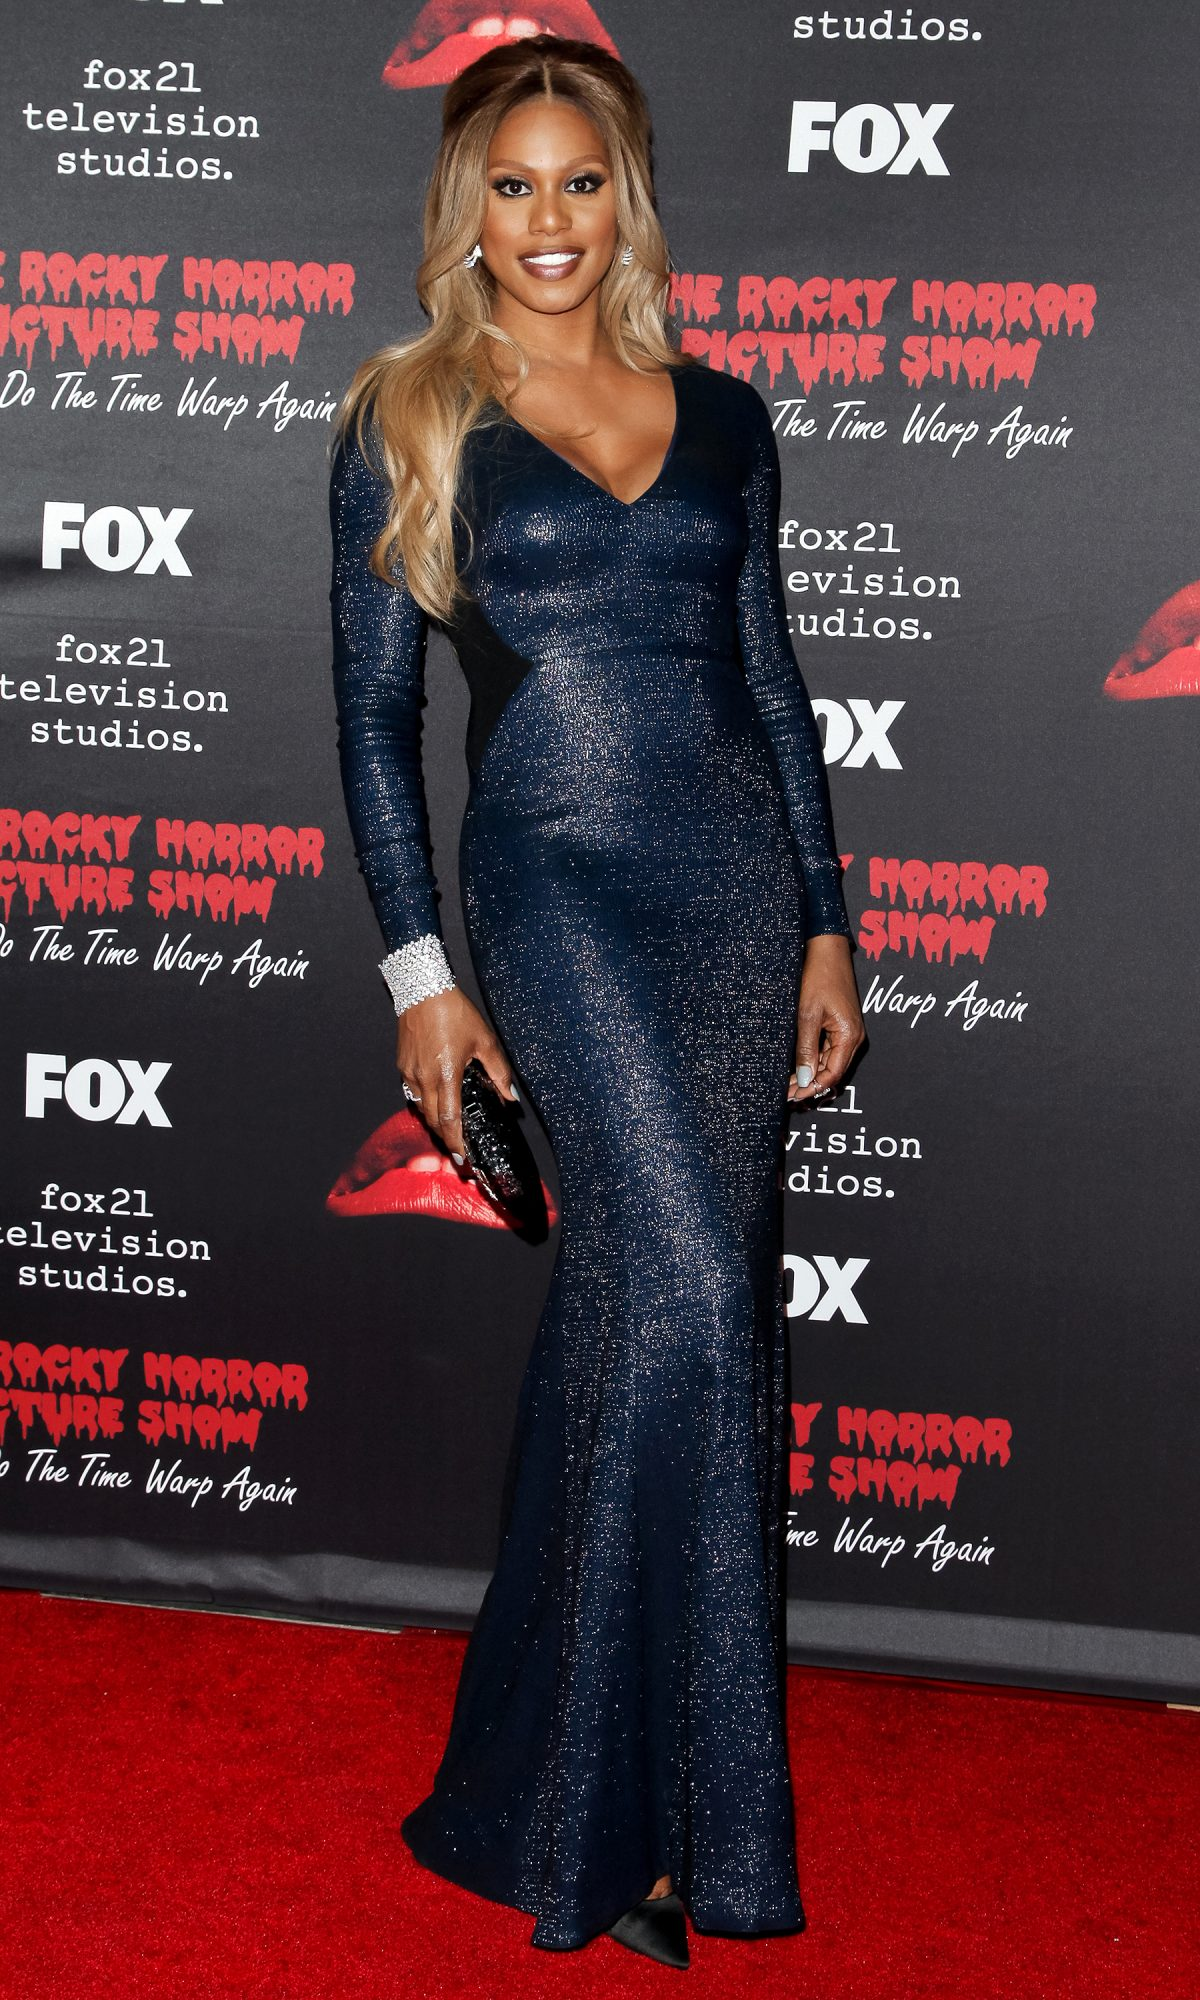 """Premiere Of Fox's """"The Rocky Horror Picture Show: Let's Do The Time Warp Again"""" - Arrivals"""